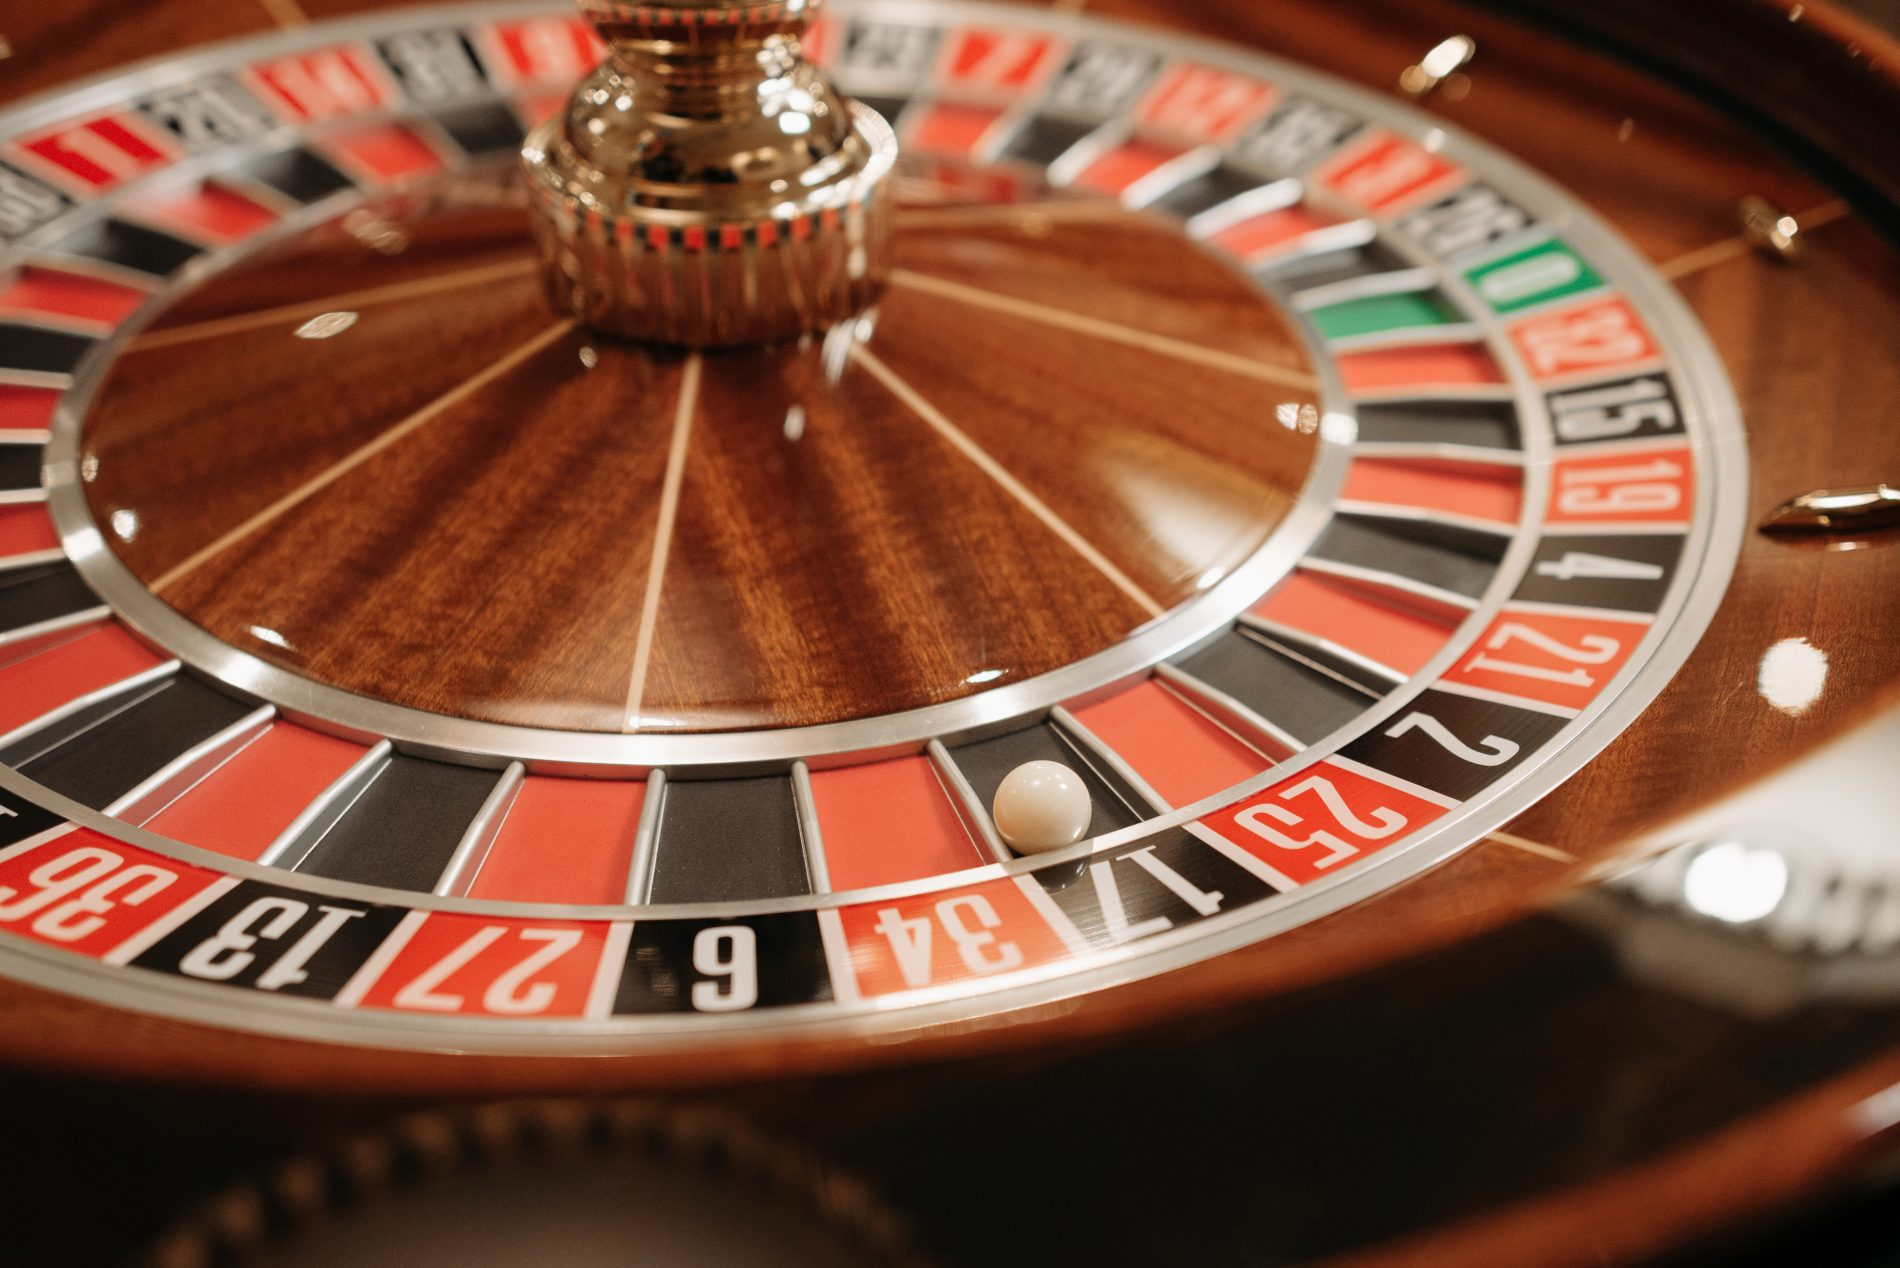 Jimmy Connors' and Gambling Addiction